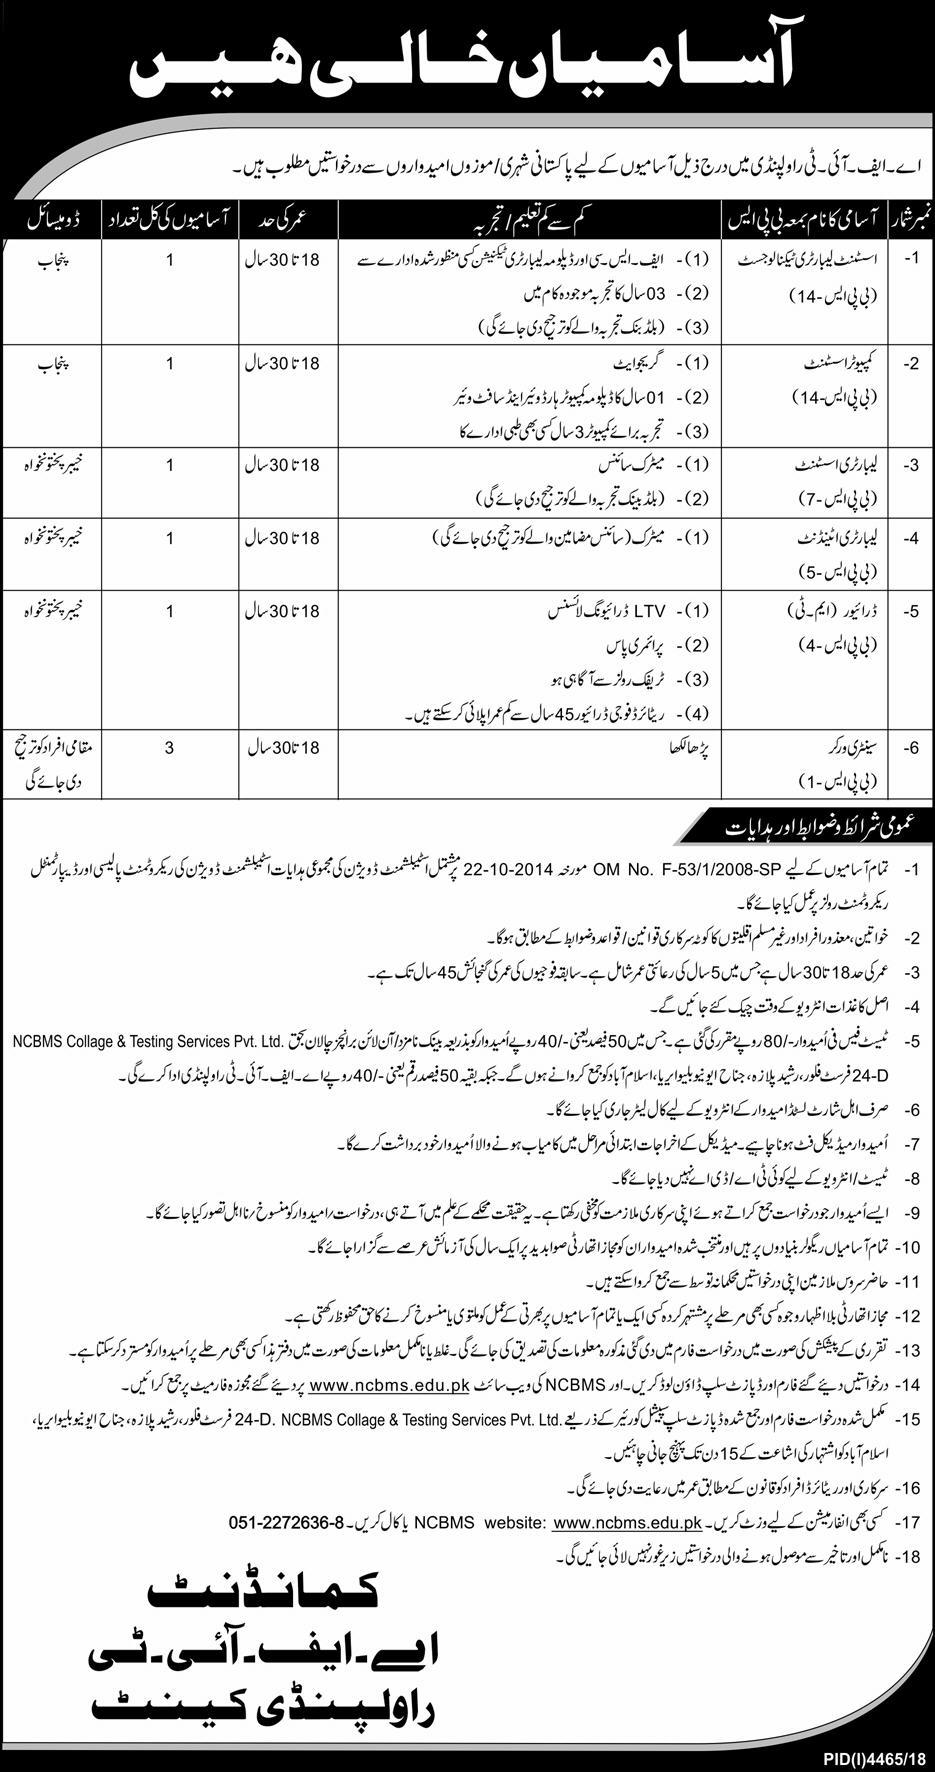 AFIT Rawalpindi Cantt Jobs Latest 2019 Apply through ncbms.edu.pk